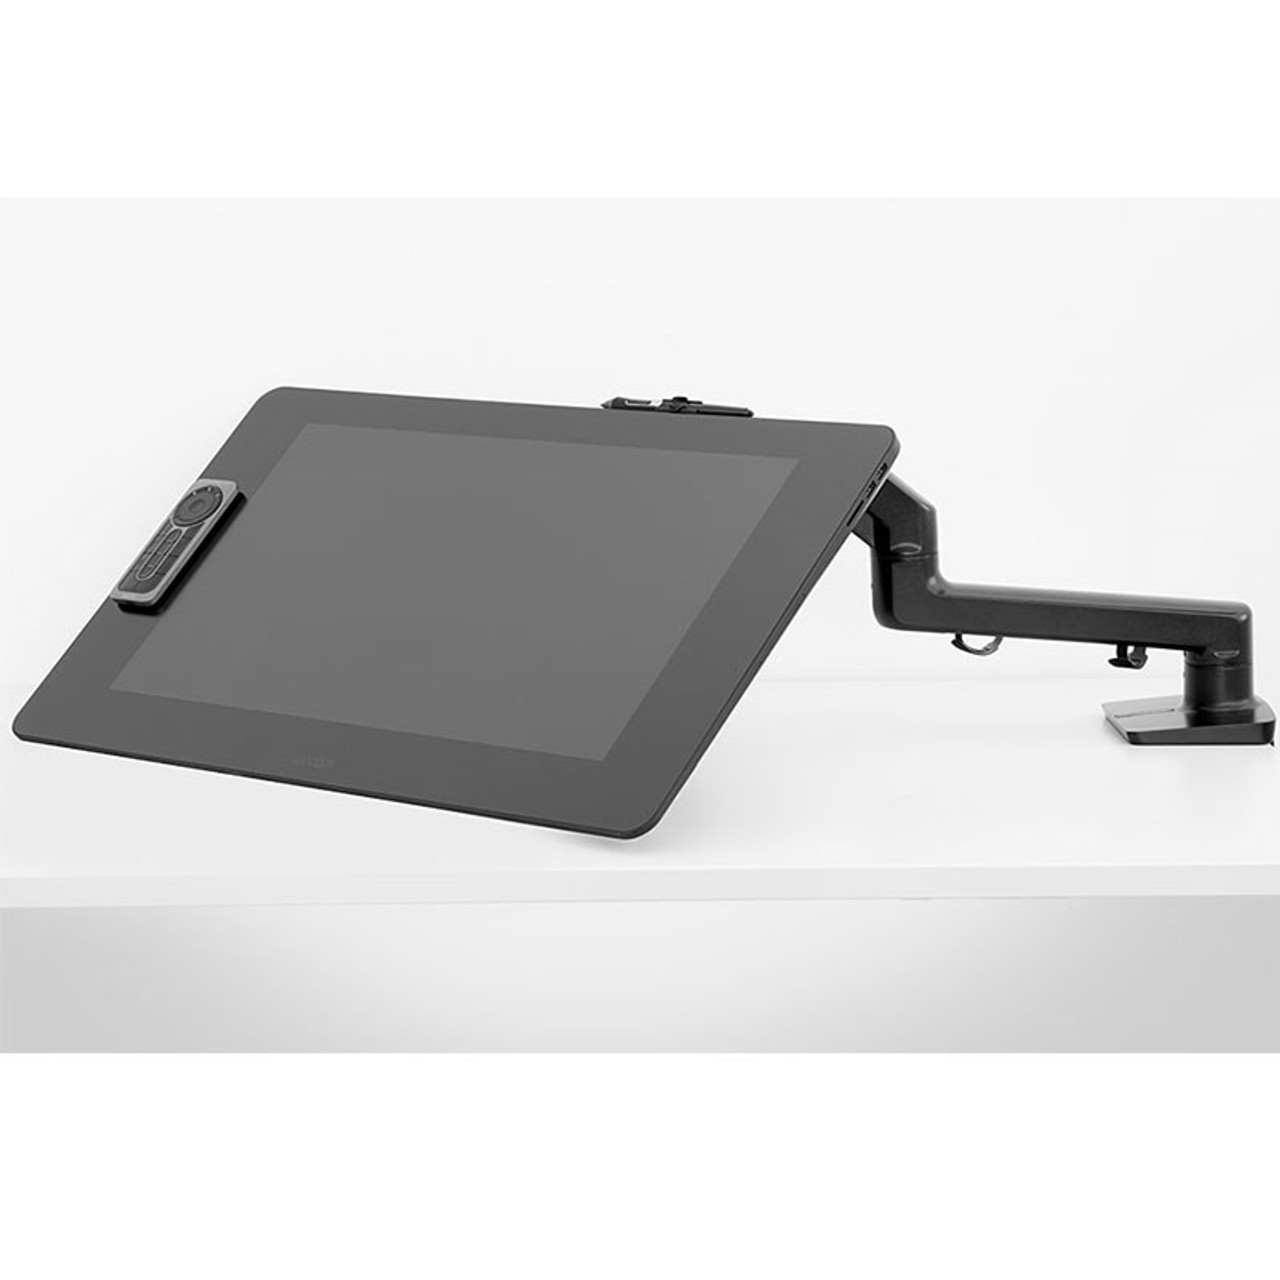 Image for Wacom Flex Arm for Cintiq Pro 24 and 32 CX Computer Superstore